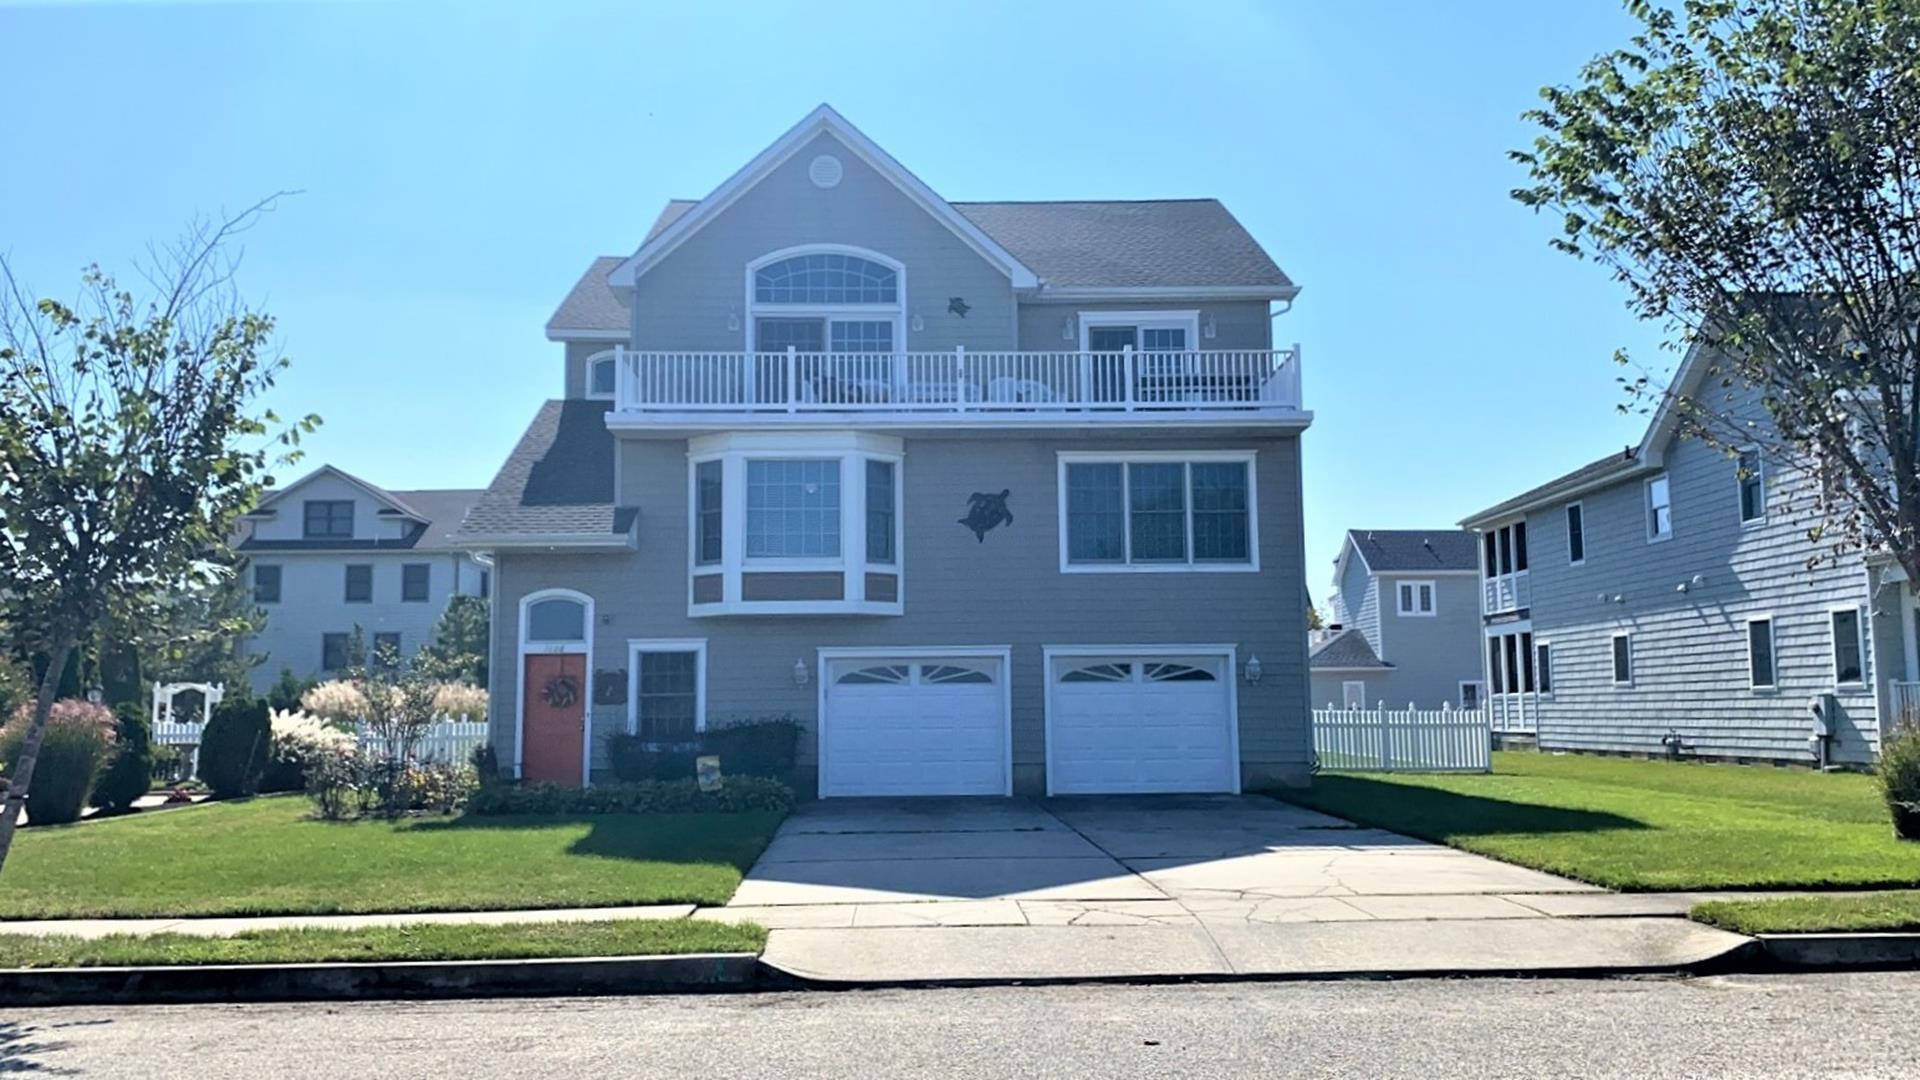 The Ashley Scott House Is Located On East End Of Cape May In Poverty Beach Section It Offers Upstairs Living E With 3rd Floor Deck Overlooking